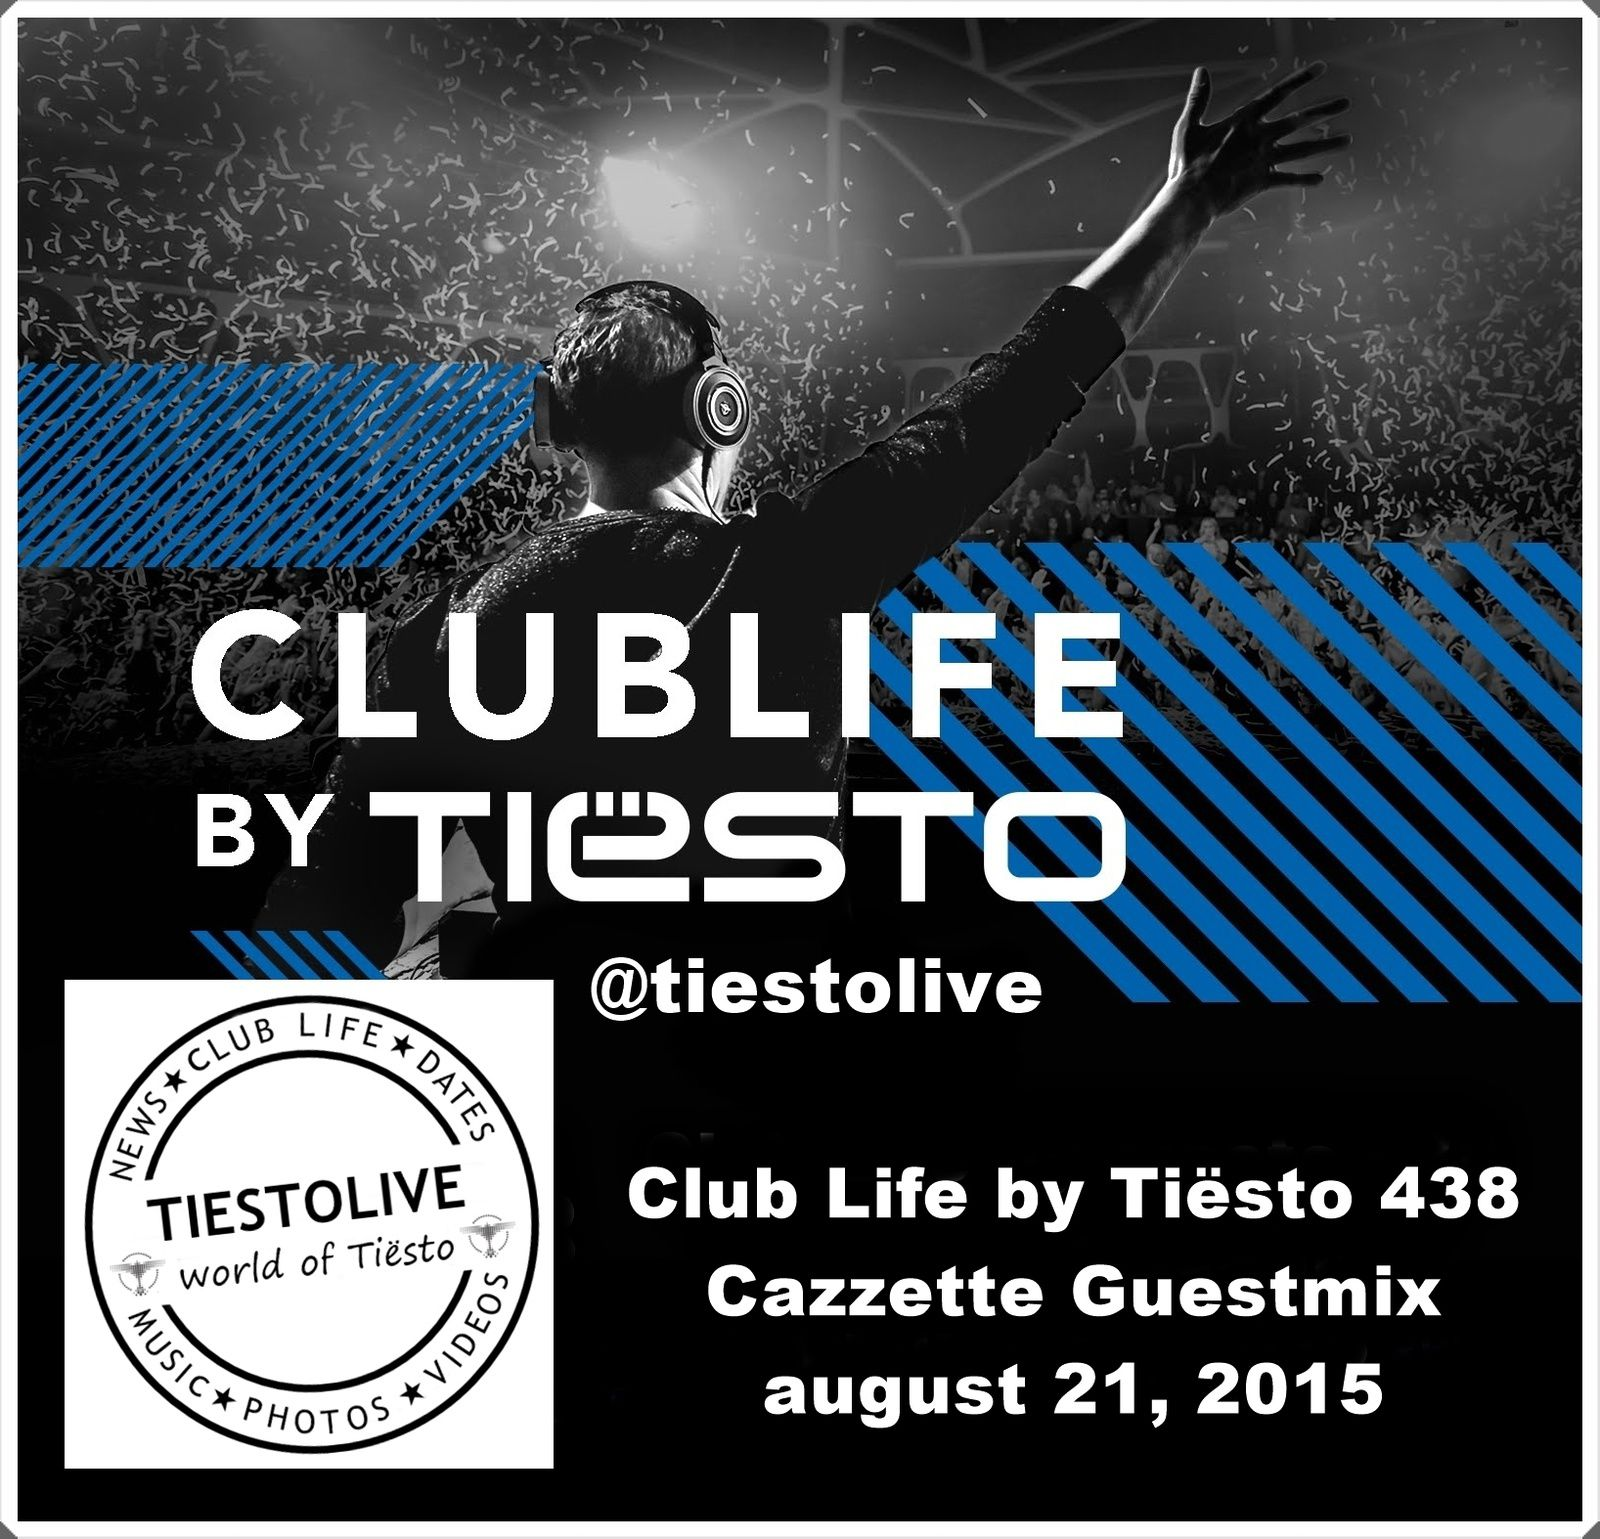 Club Life by Tiësto 438 - Cazzette Guestmix - august 21, 2015